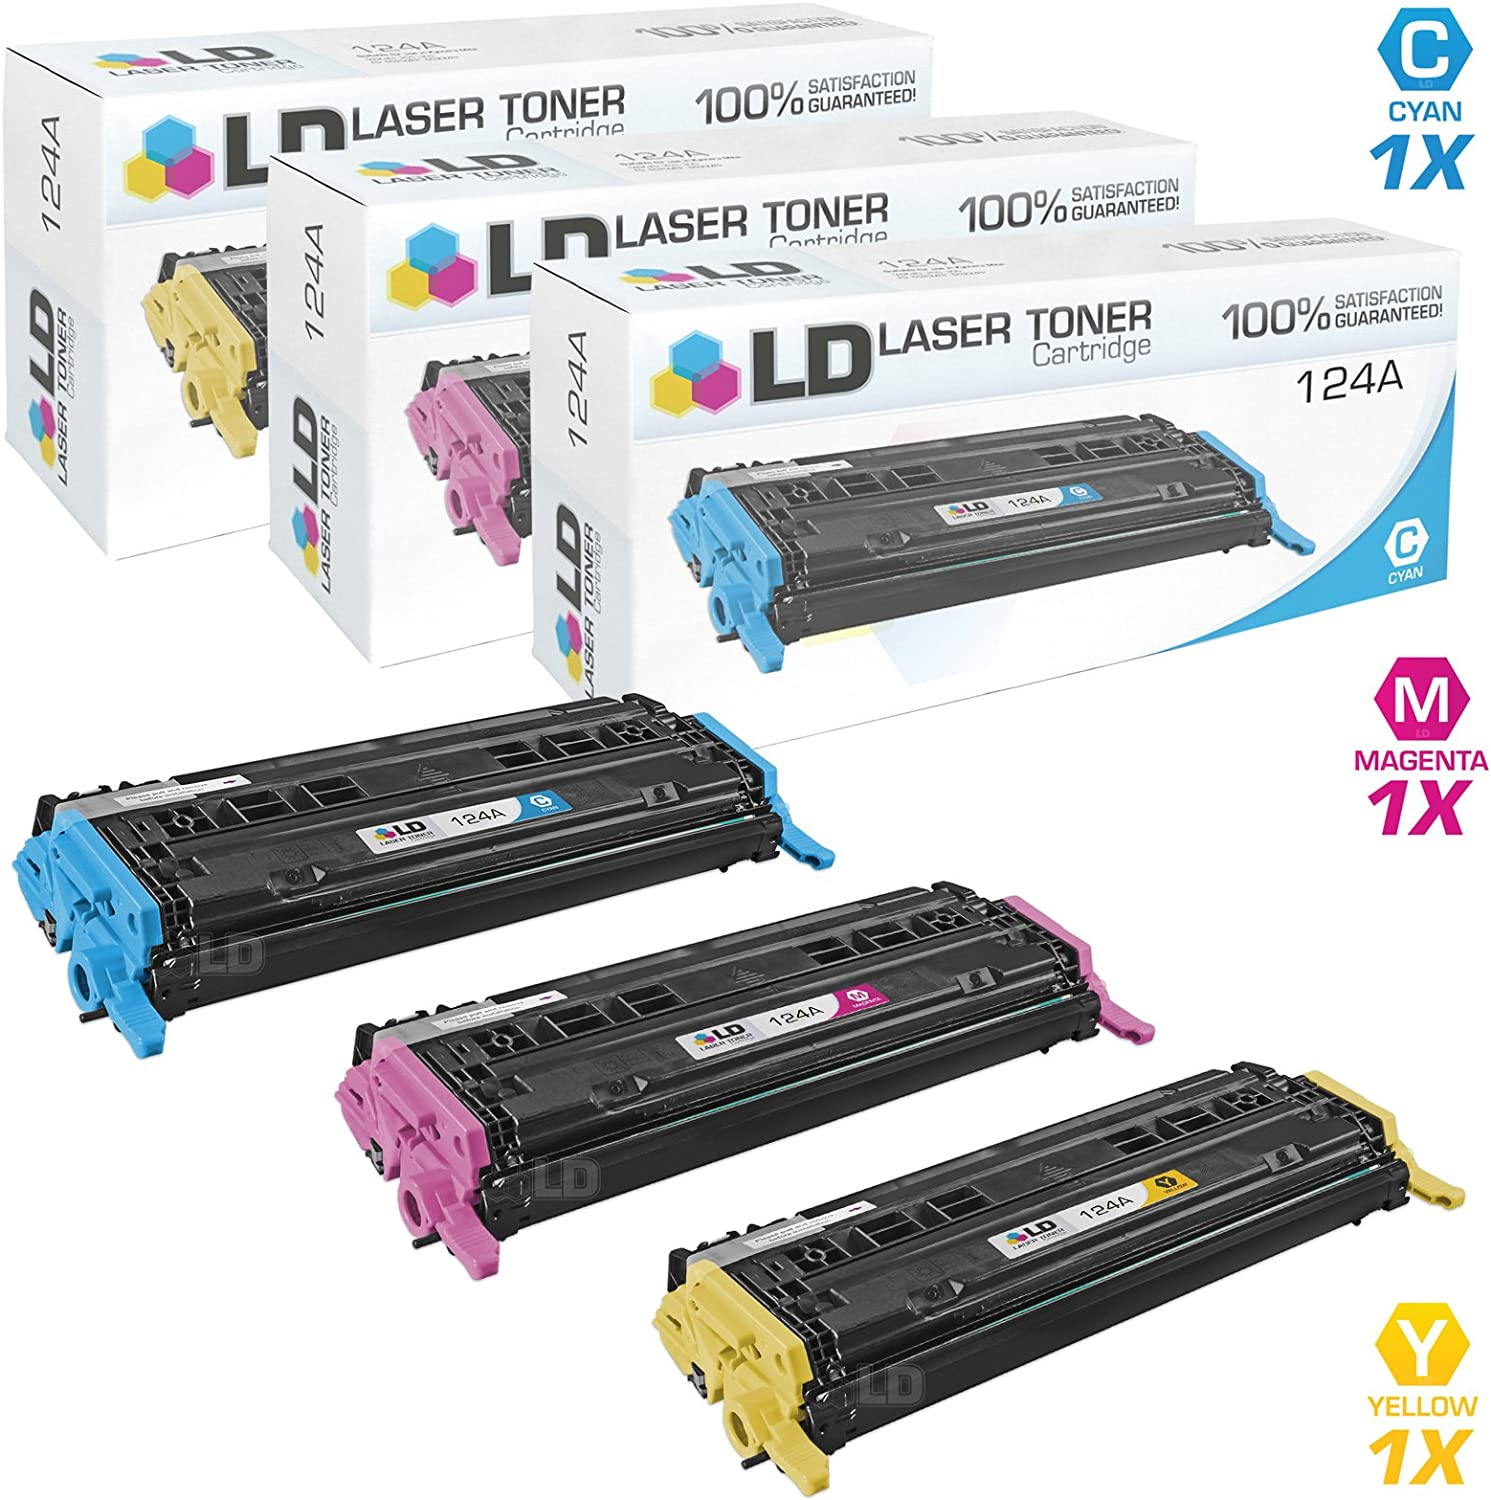 LD Remanufactured Toner Cartridge Replacement for HP 124A (Cyan, Magenta, Yellow, 3-Pack)